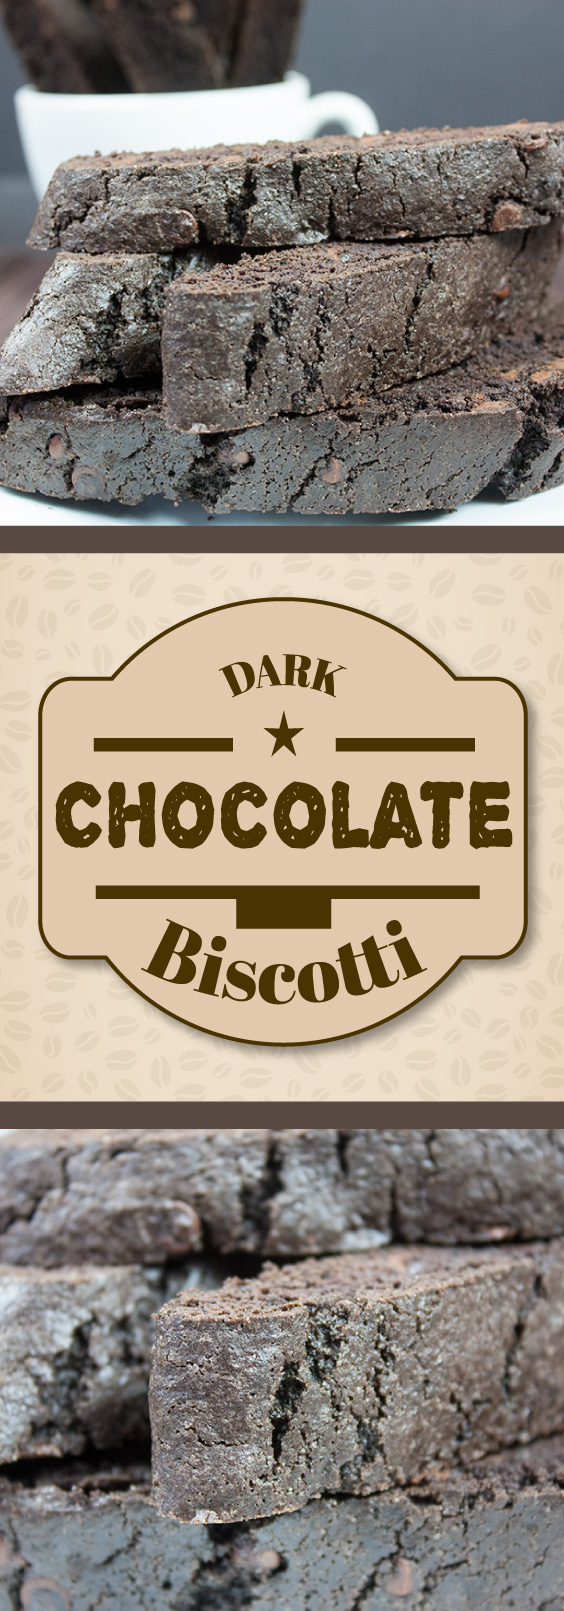 Dark Chocolate Biscotti - It's not just for the holidays! Enjoy one with your afternoon coffee anytime of the year.